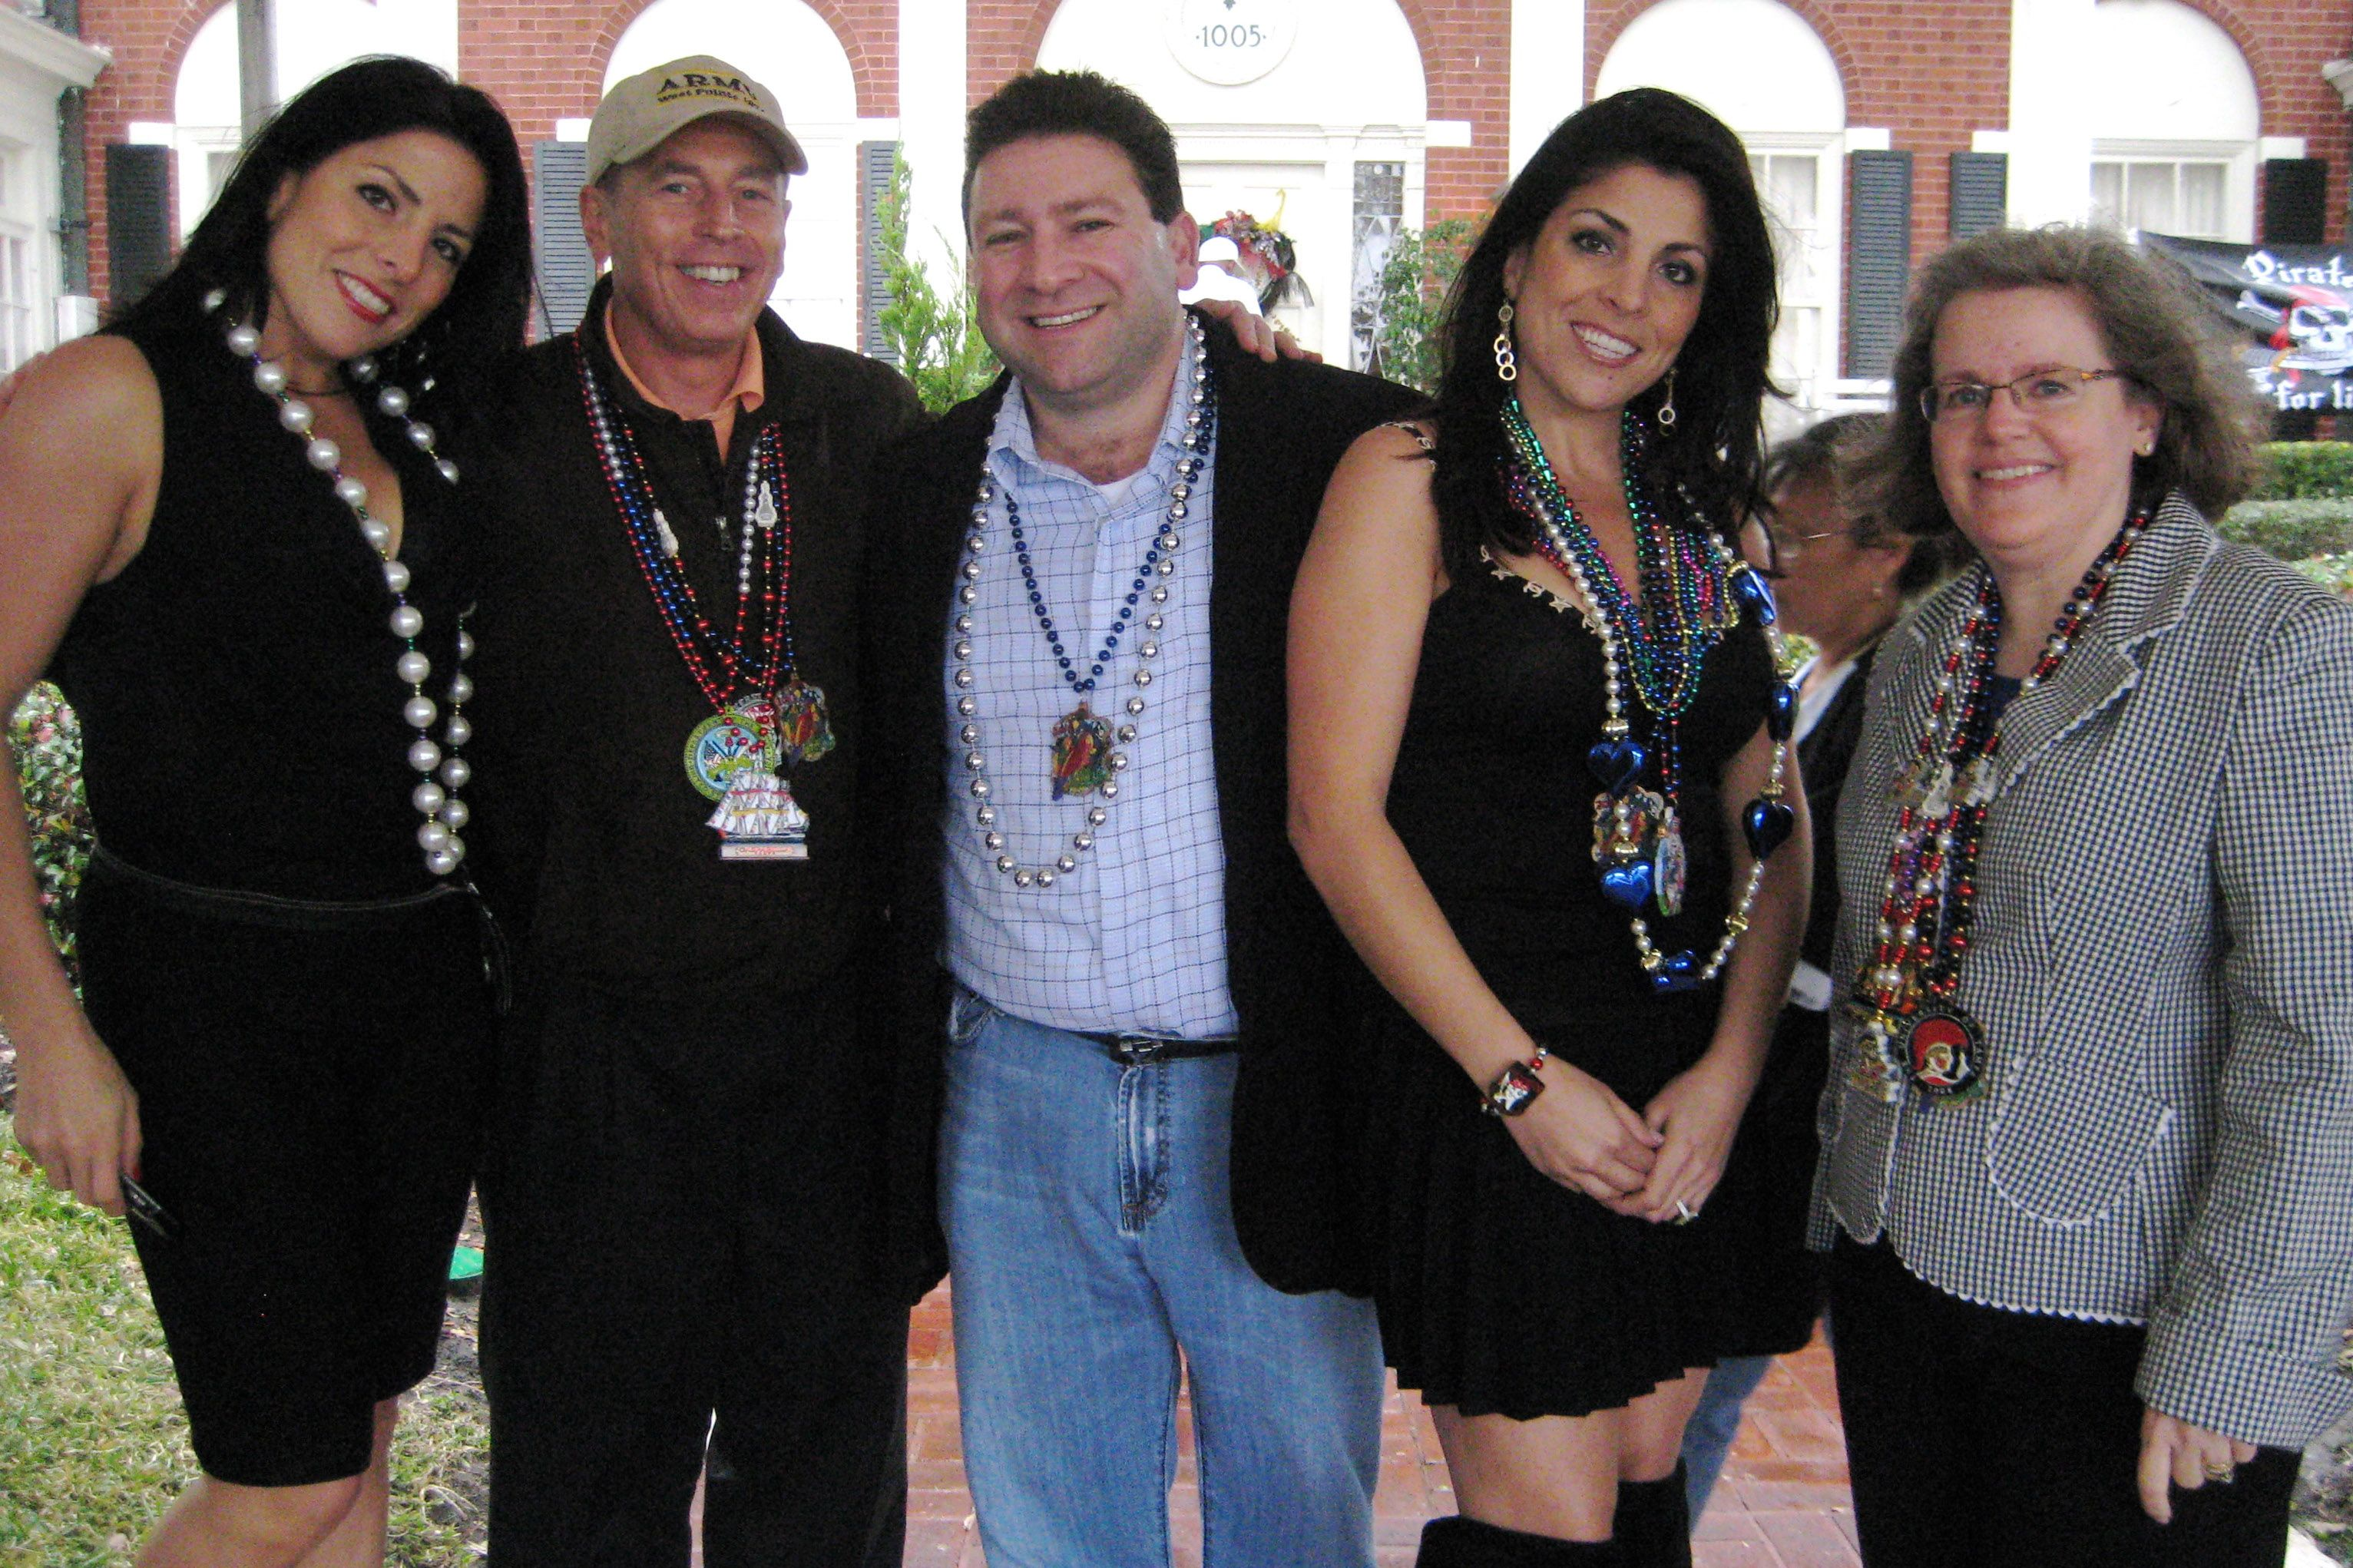 From left, Natalie Kwawam, David Petraeus, Scott Kelley, Jill Kelley, Holly Petraeus in 2010